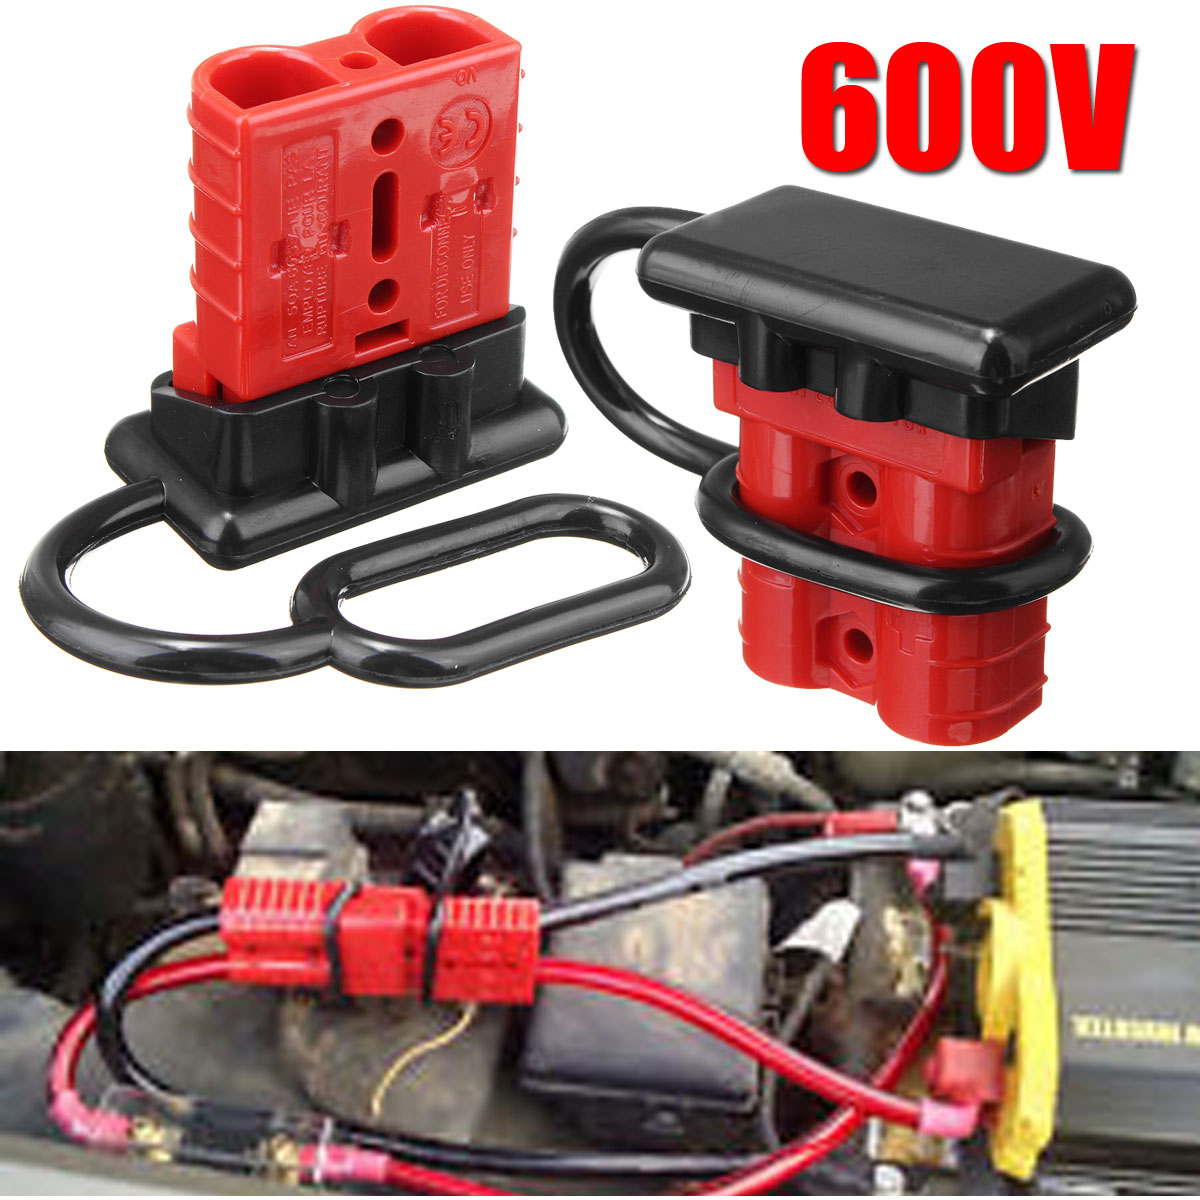 Autoleader 2pcs Battery Quick Connector 50a Winch Wire Harness Disconnect Plug 600v Trailer Set On Alibaba Group